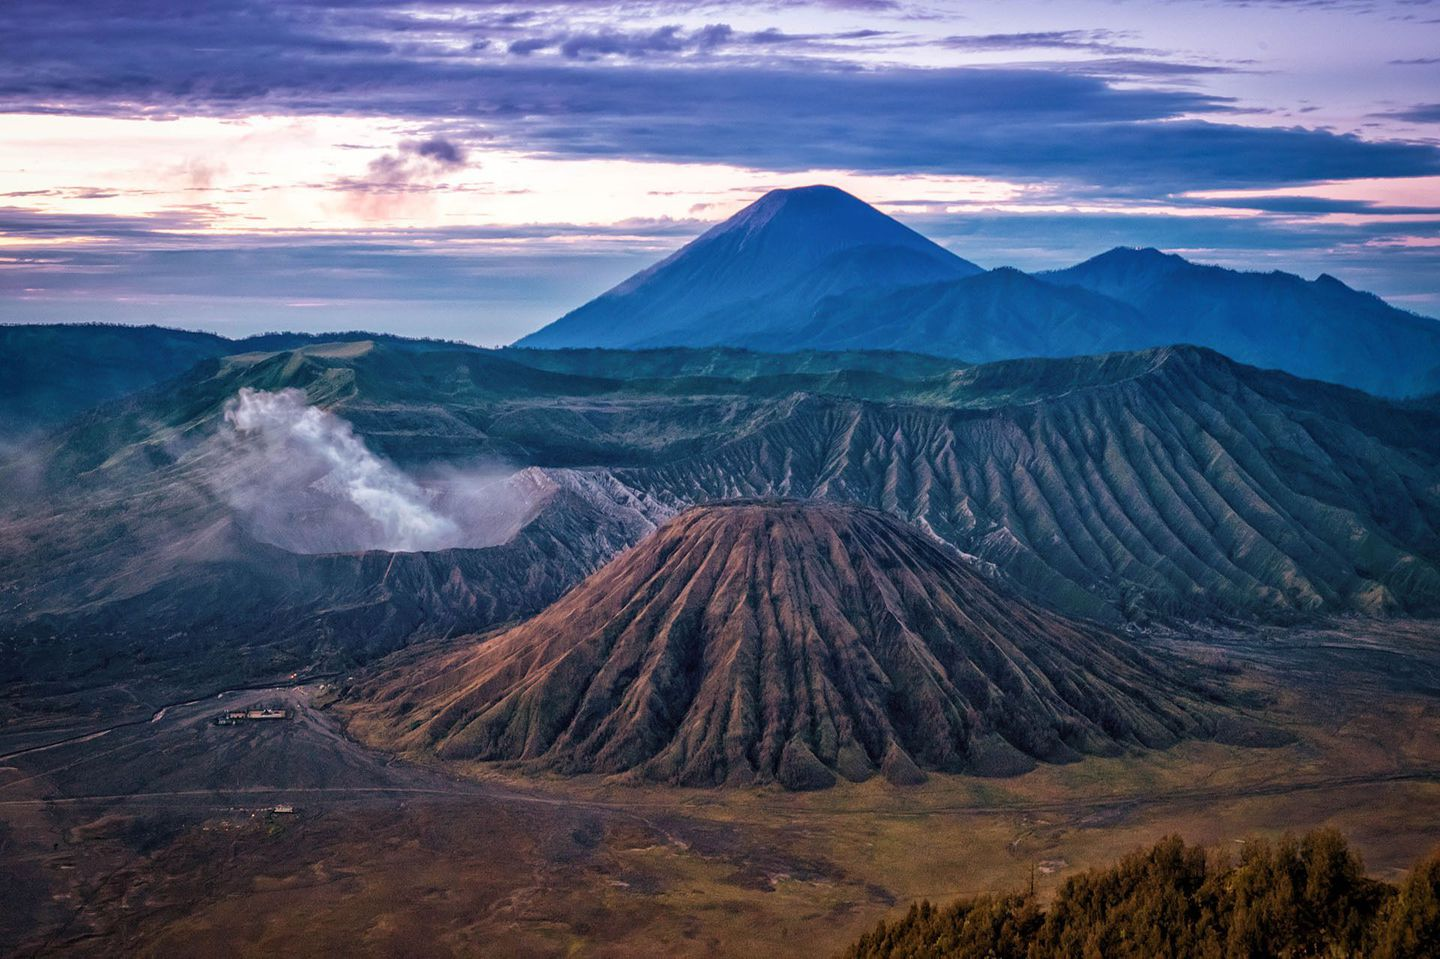 Indonesia%20mt%20bromo%20sunrise%20by%20rosie%20yound